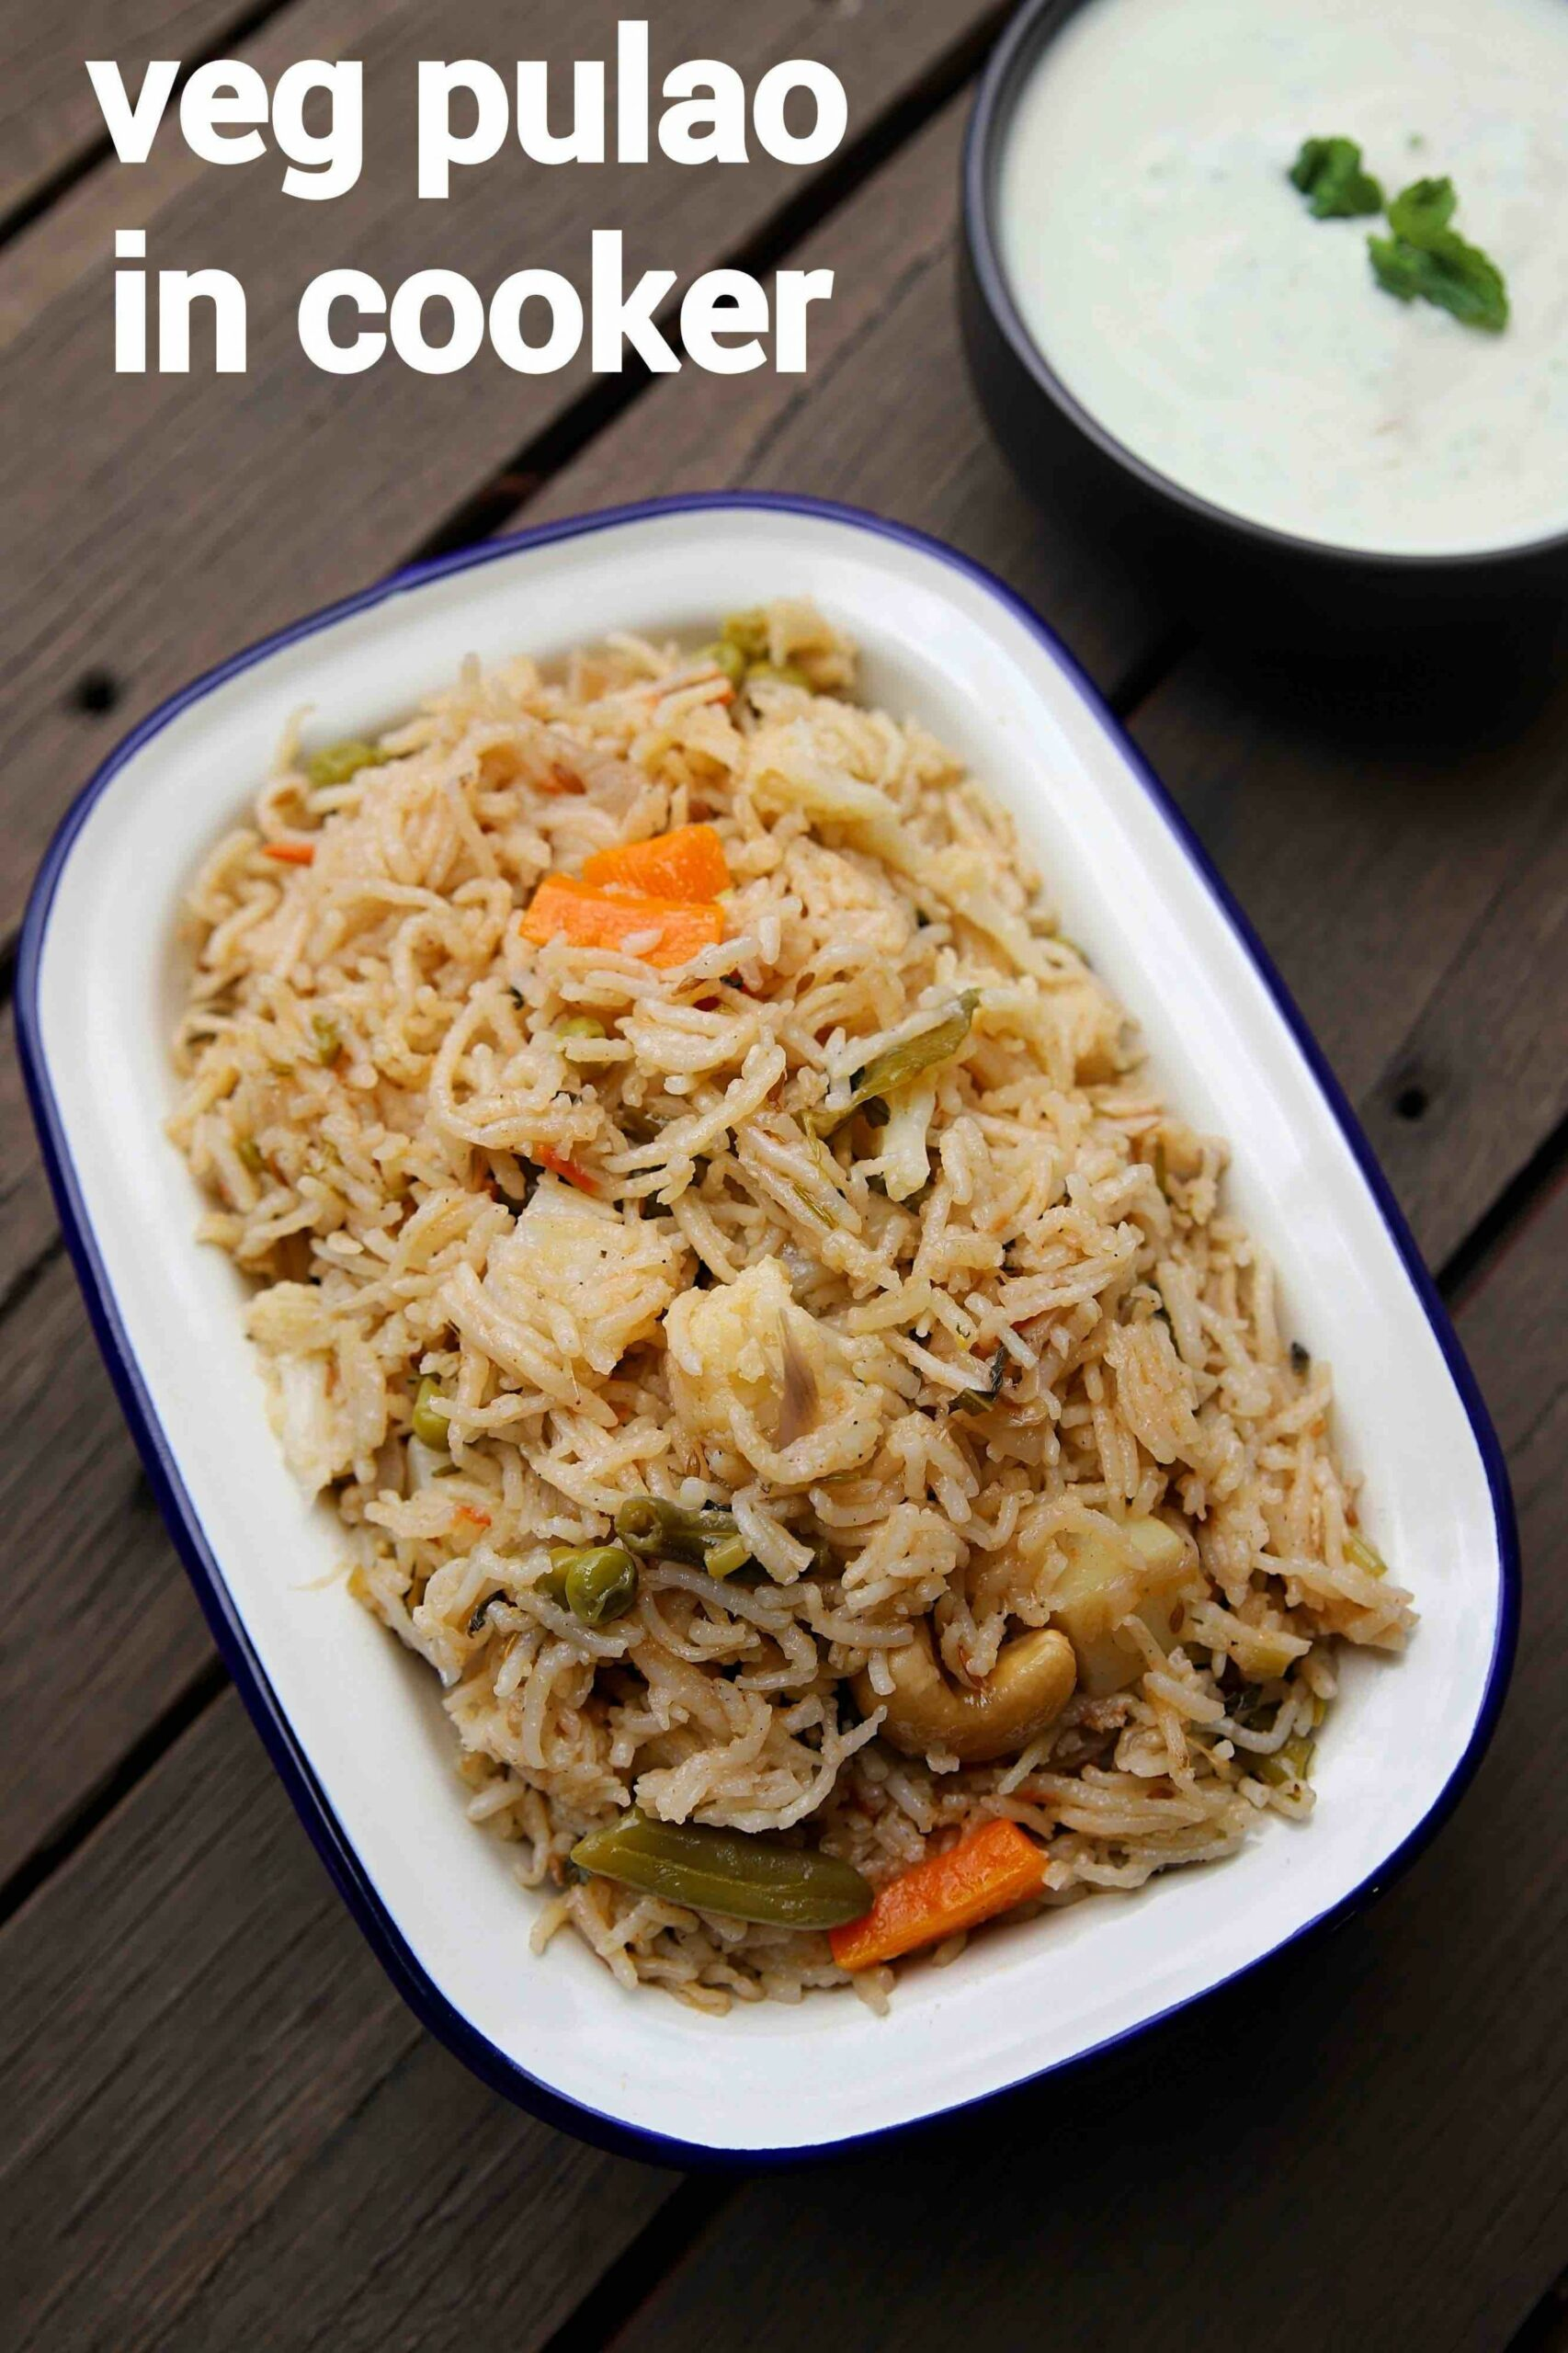 veg pulao recipe | vegetable pulao | how to make veg pulav in cooker - Recipes Rice For Pulao